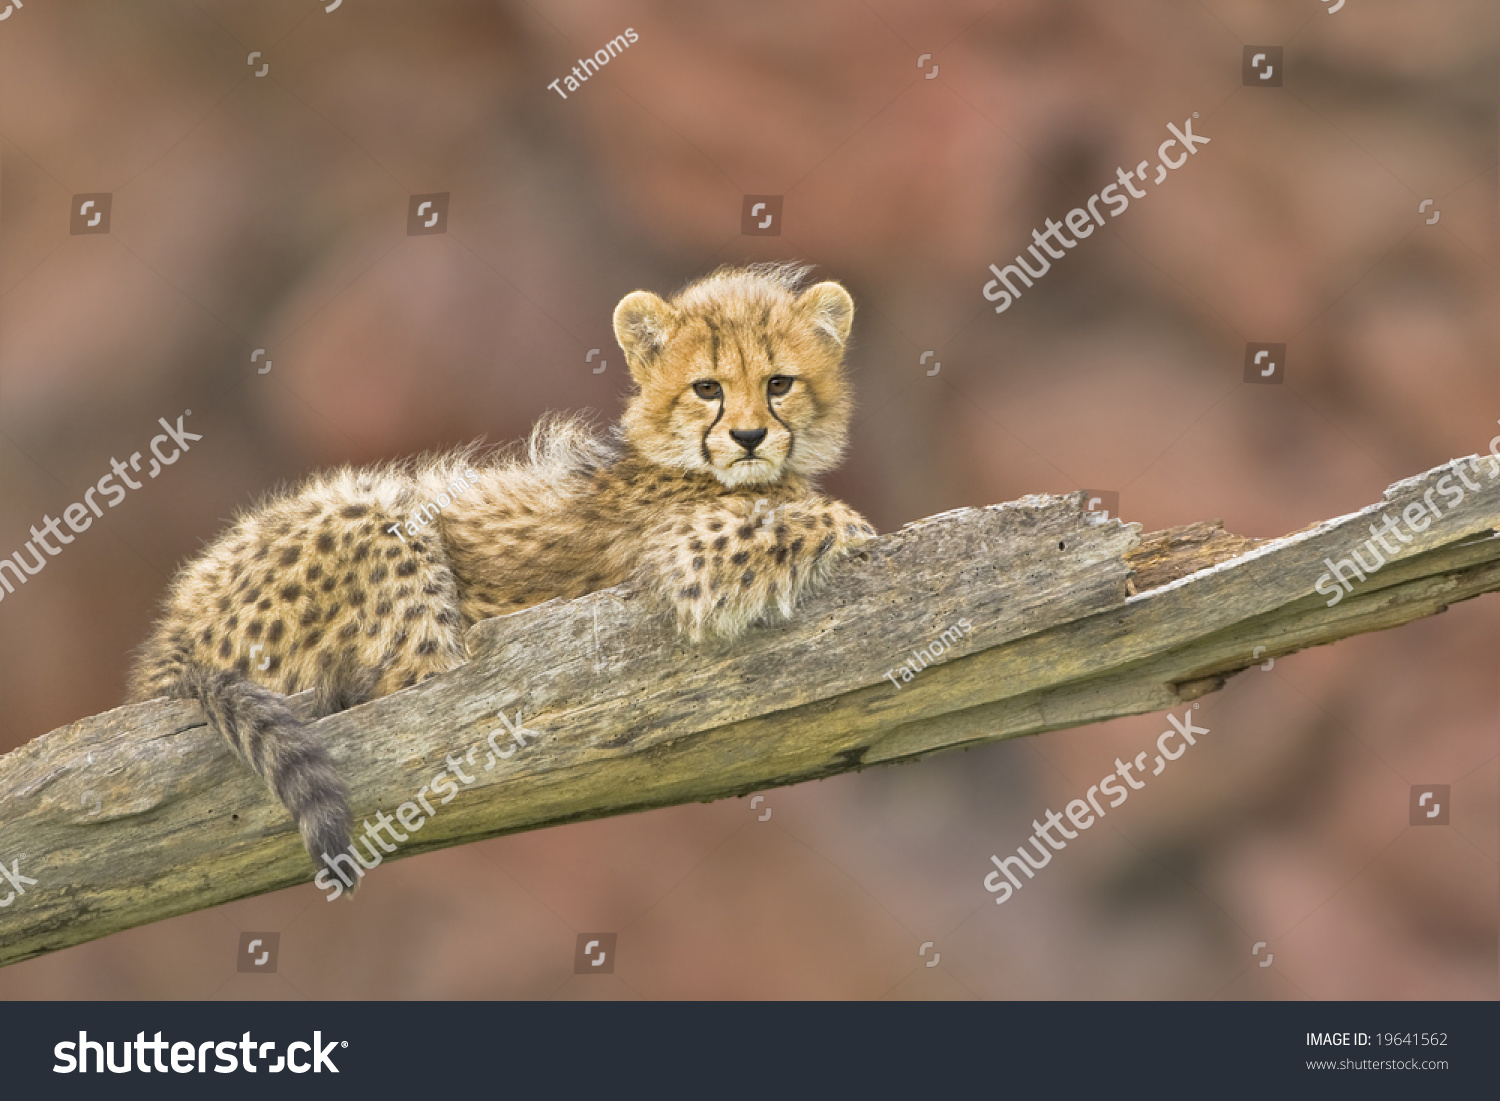 stock-photo--months-old-cheetah-cub-1964